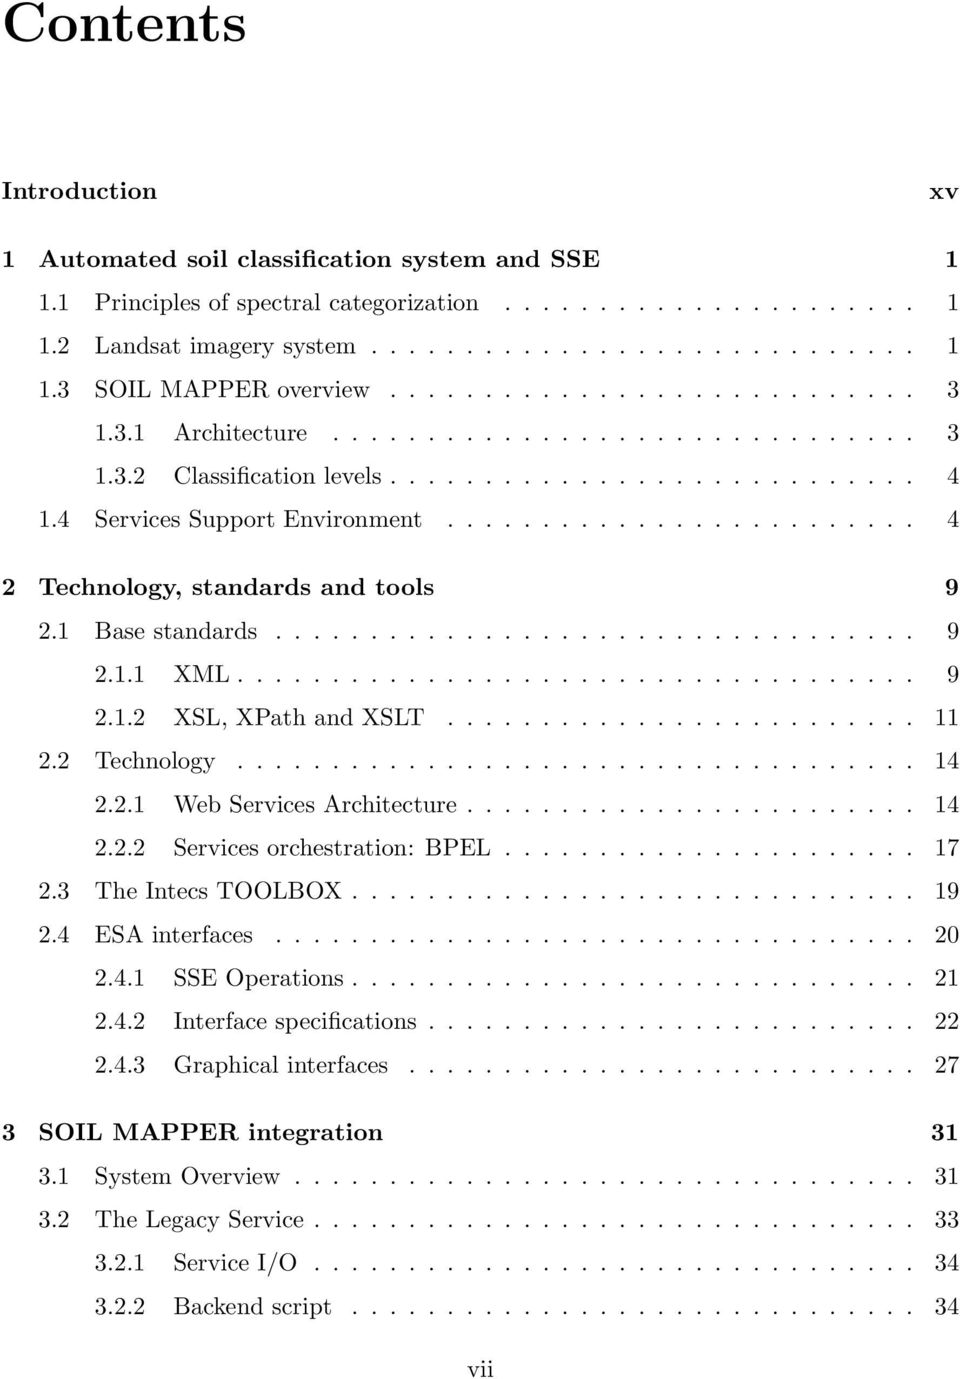 ........................ 4 2 Technology, standards and tools 9 2.1 Base standards.................................. 9 2.1.1 XML.................................... 9 2.1.2 XSL, XPath and XSLT......................... 11 2.